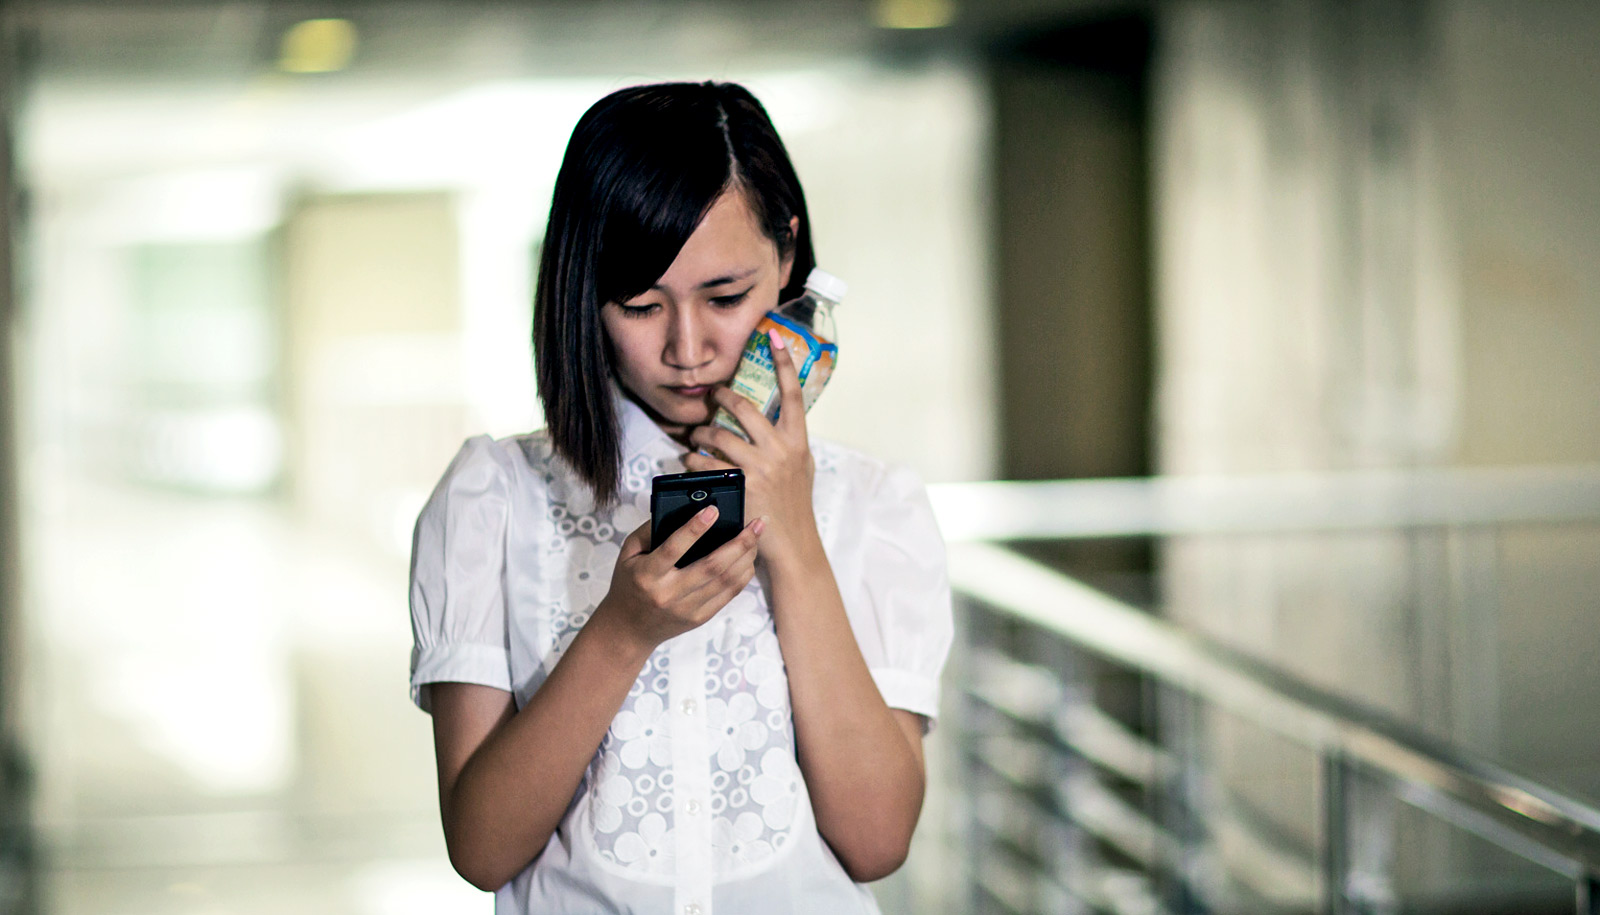 sad young woman looks at phone